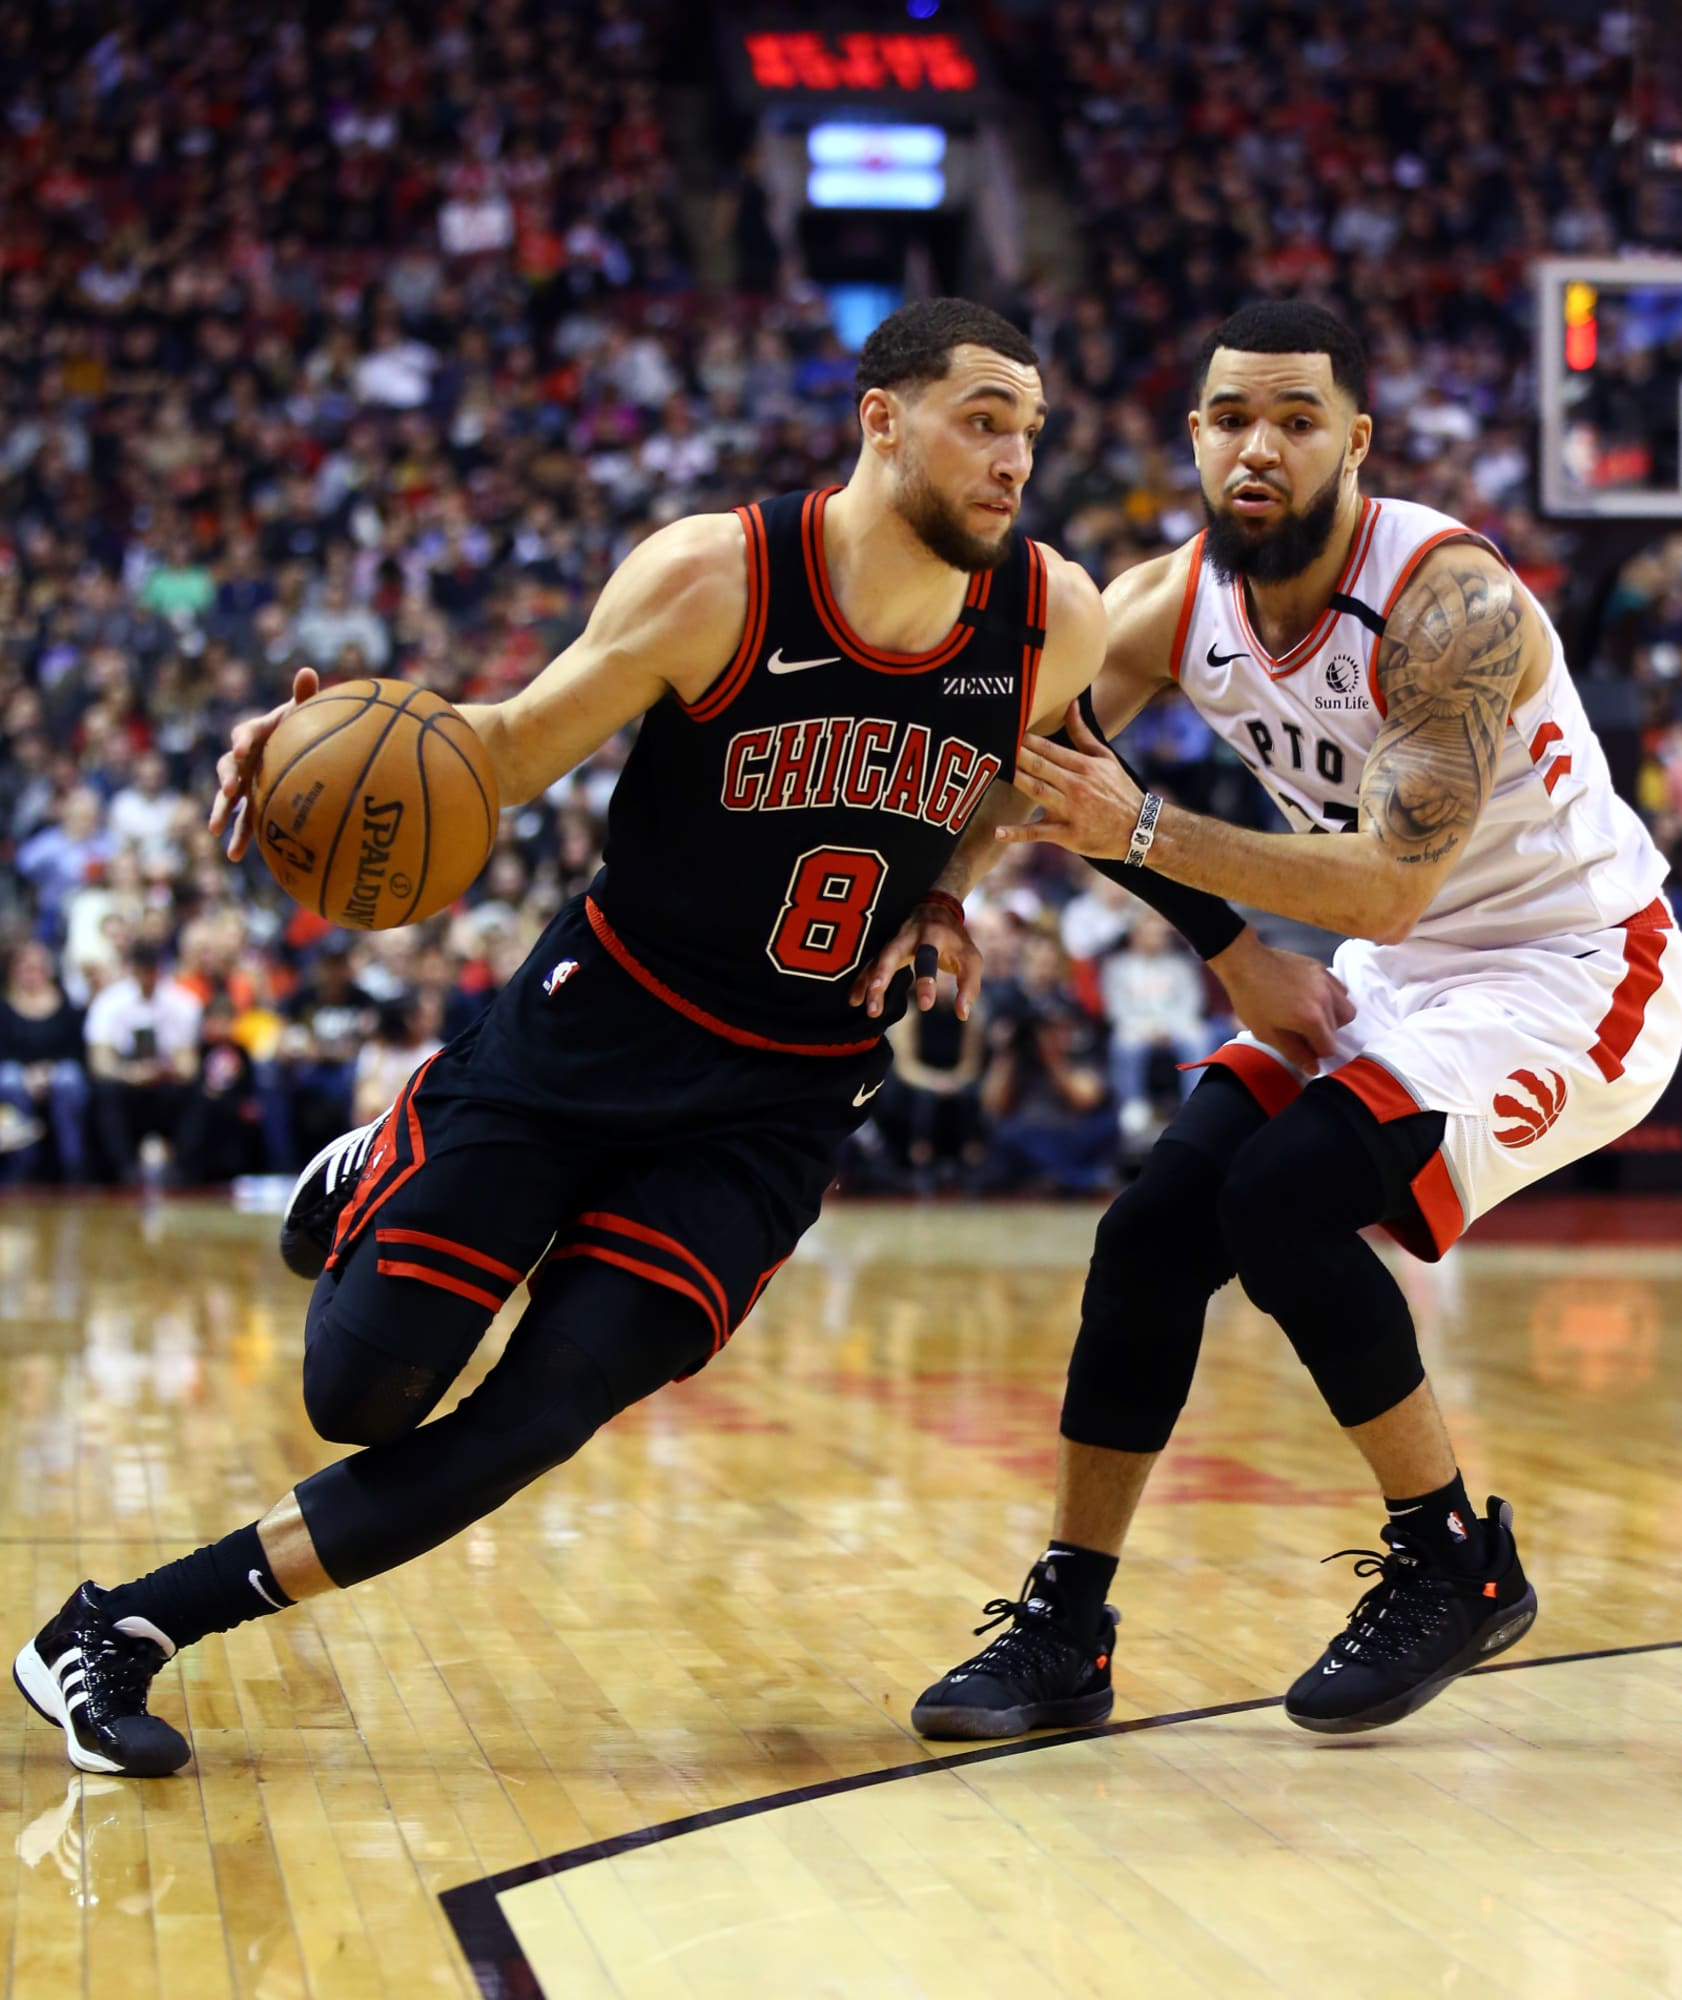 The Toronto Raptors match up well against the struggling Chicago Bulls